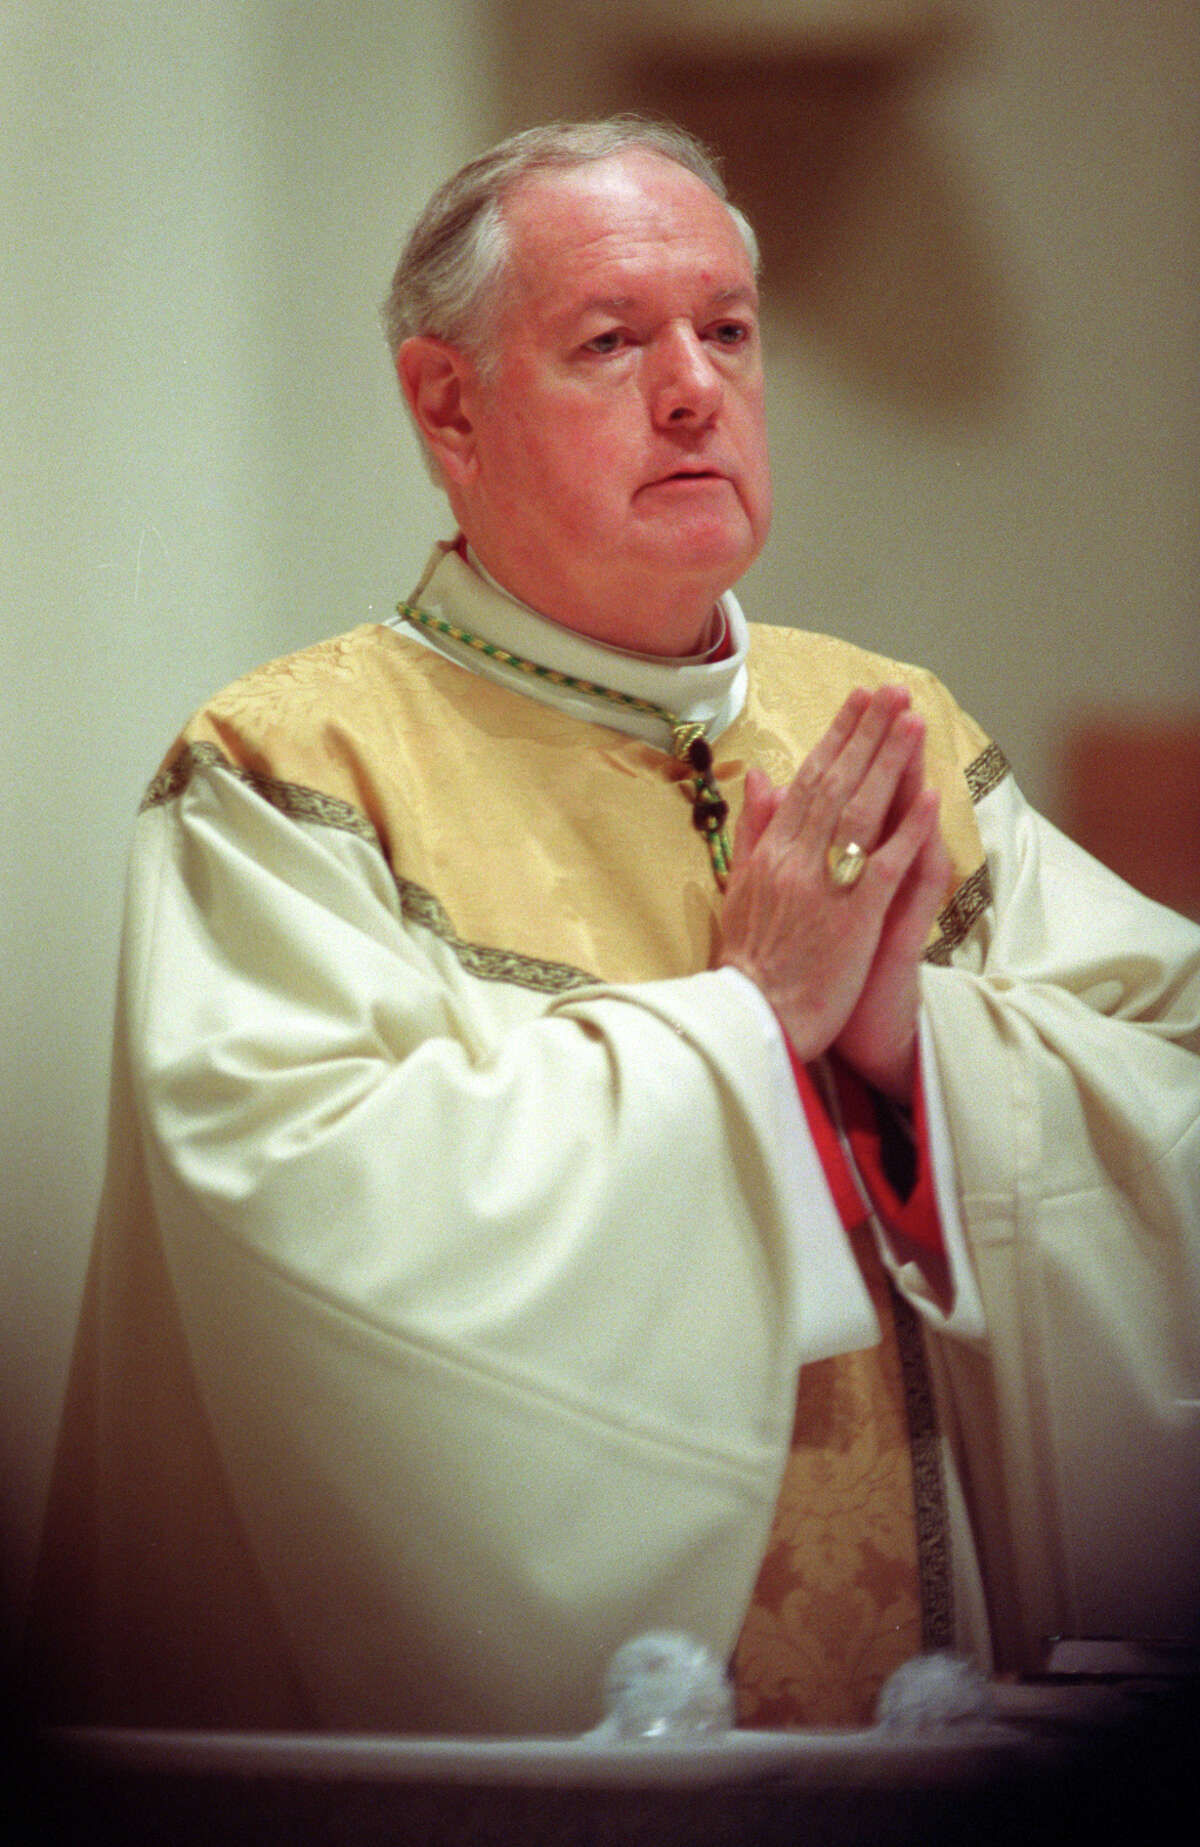 Cardinal Edward Egan served as Bishop of the Roman Catholic Diocese of Bridgeport from 1988-2000.